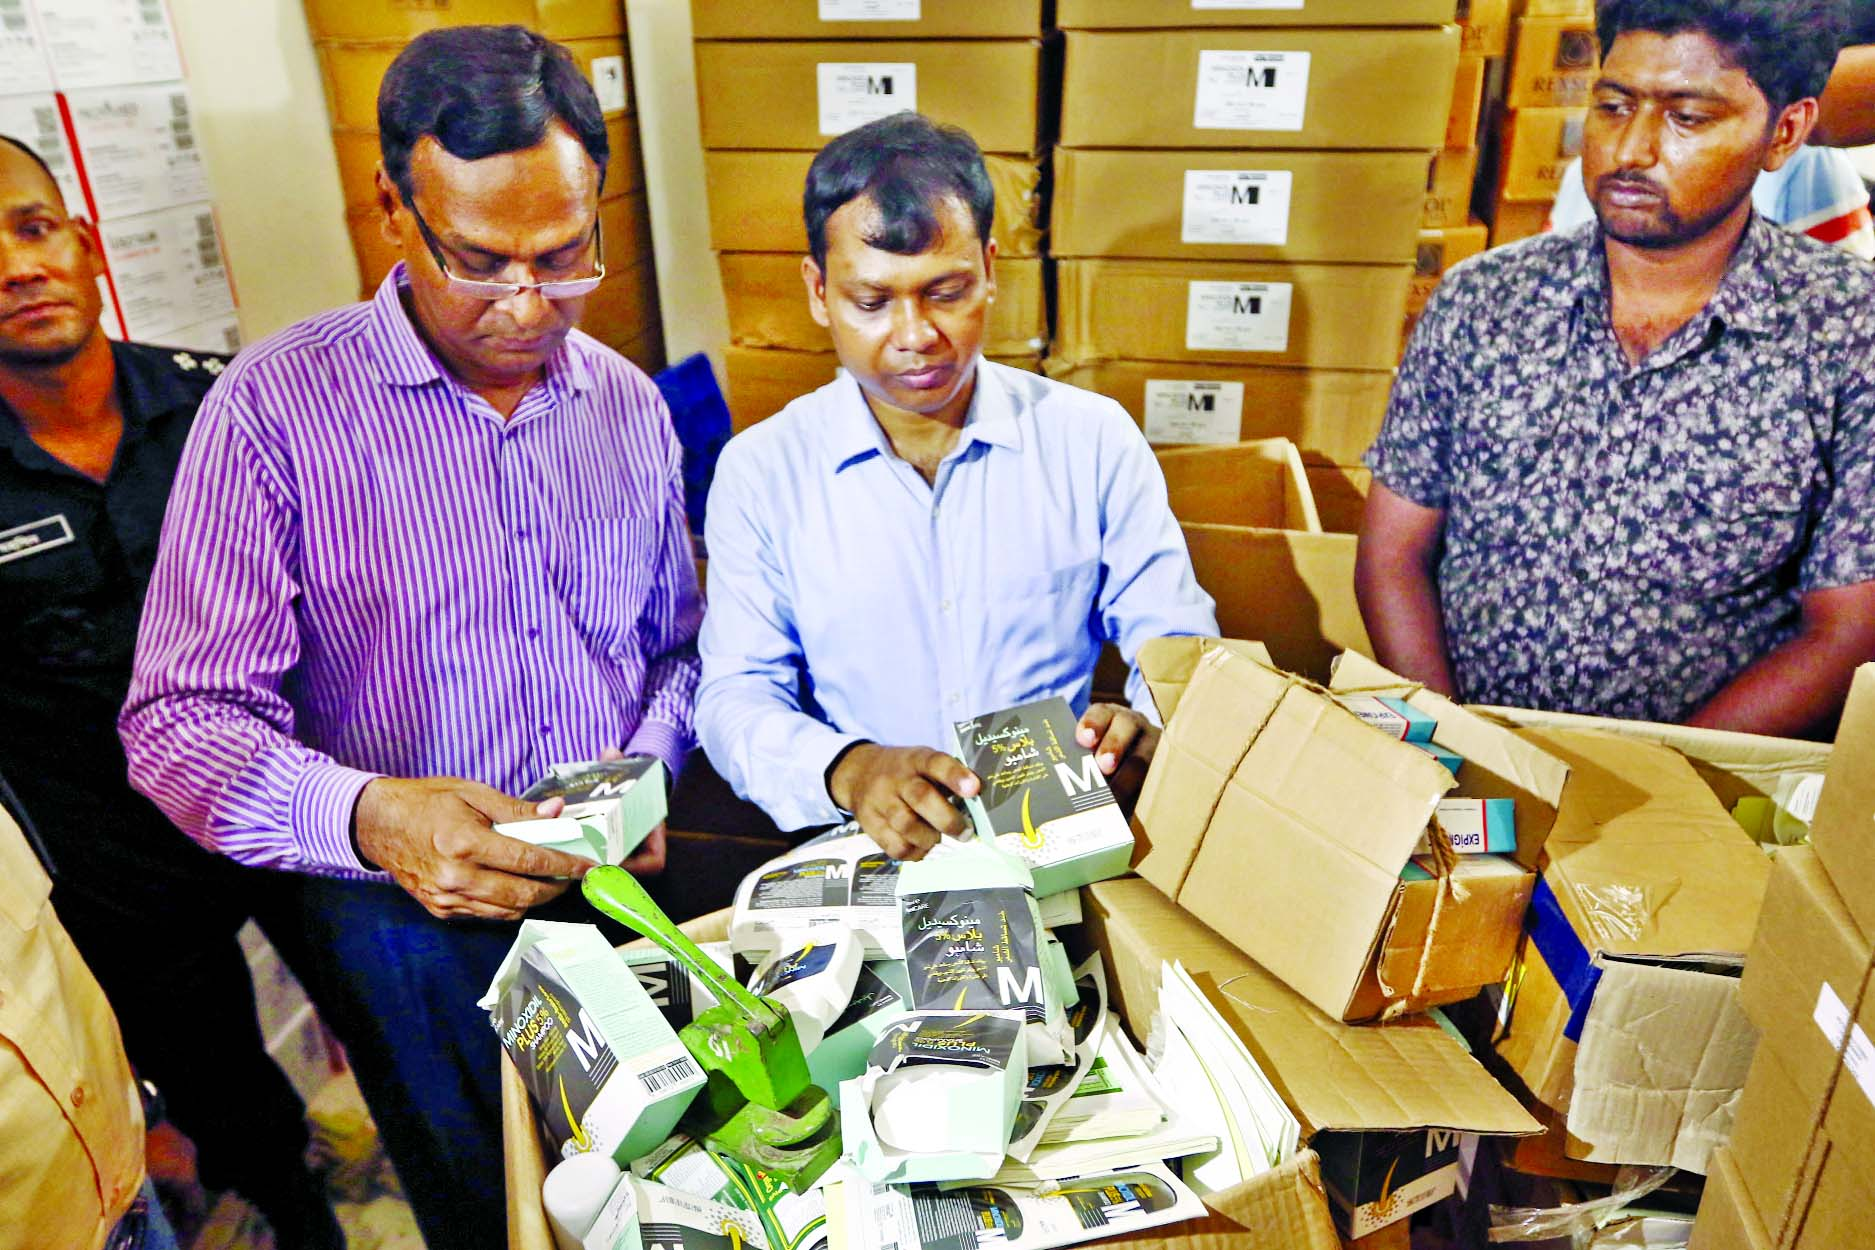 A mobile court led by RAB executive magistrate Mohammad Sarwar Alam fined two companies Tk 40 lakh for producing and selling spurious drugs at Hatirpool market in Dhaka on Tuesday.